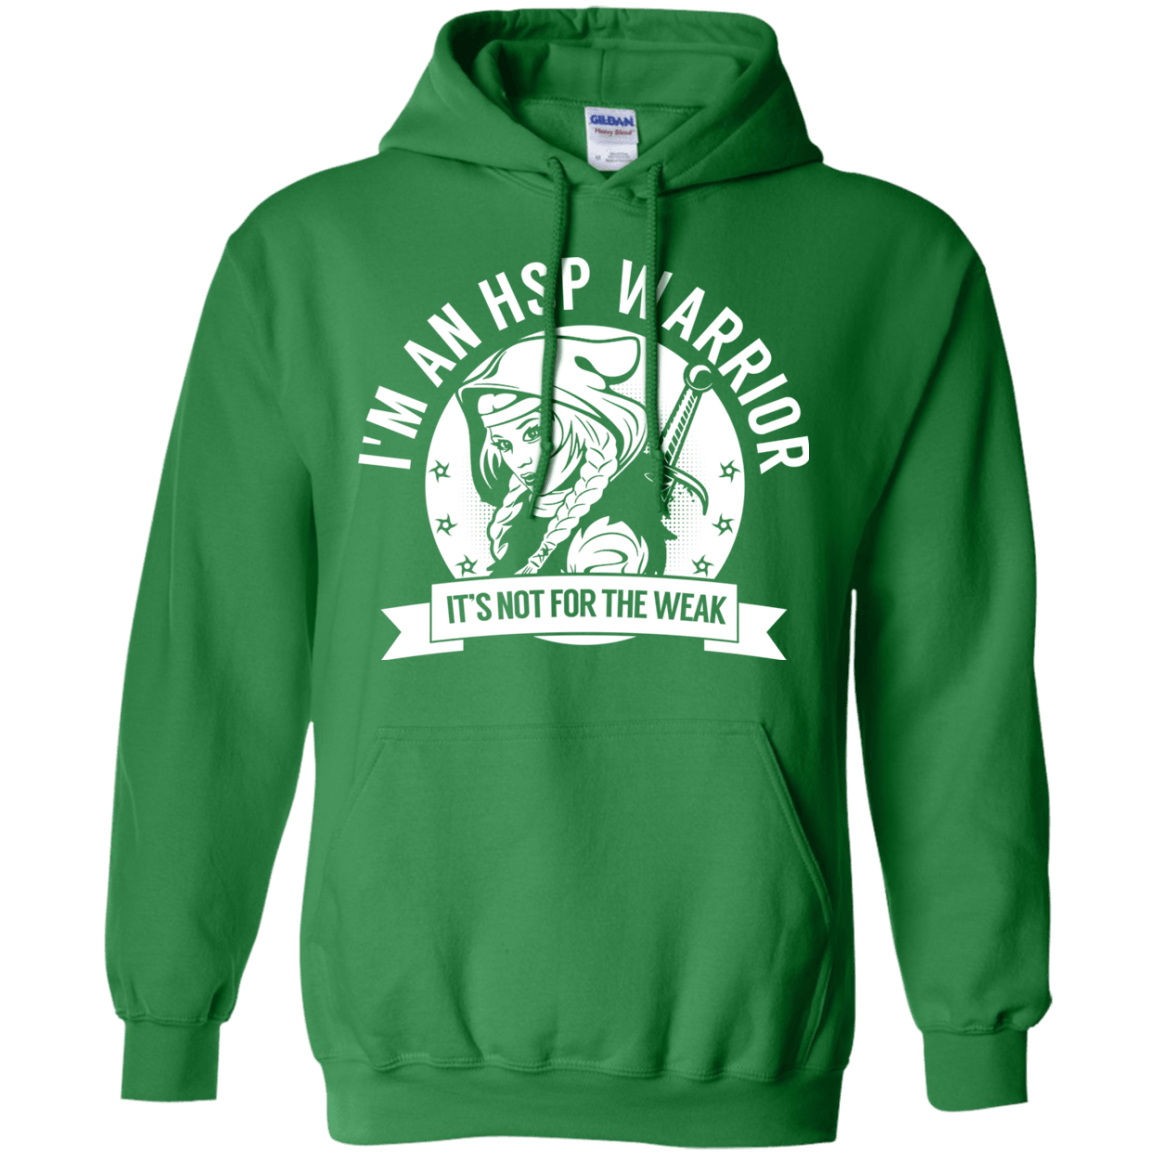 Hereditary Spastic Paraparesis - HSP Warrior Hooded Pullover Hoodie 8 oz. - The Unchargeables